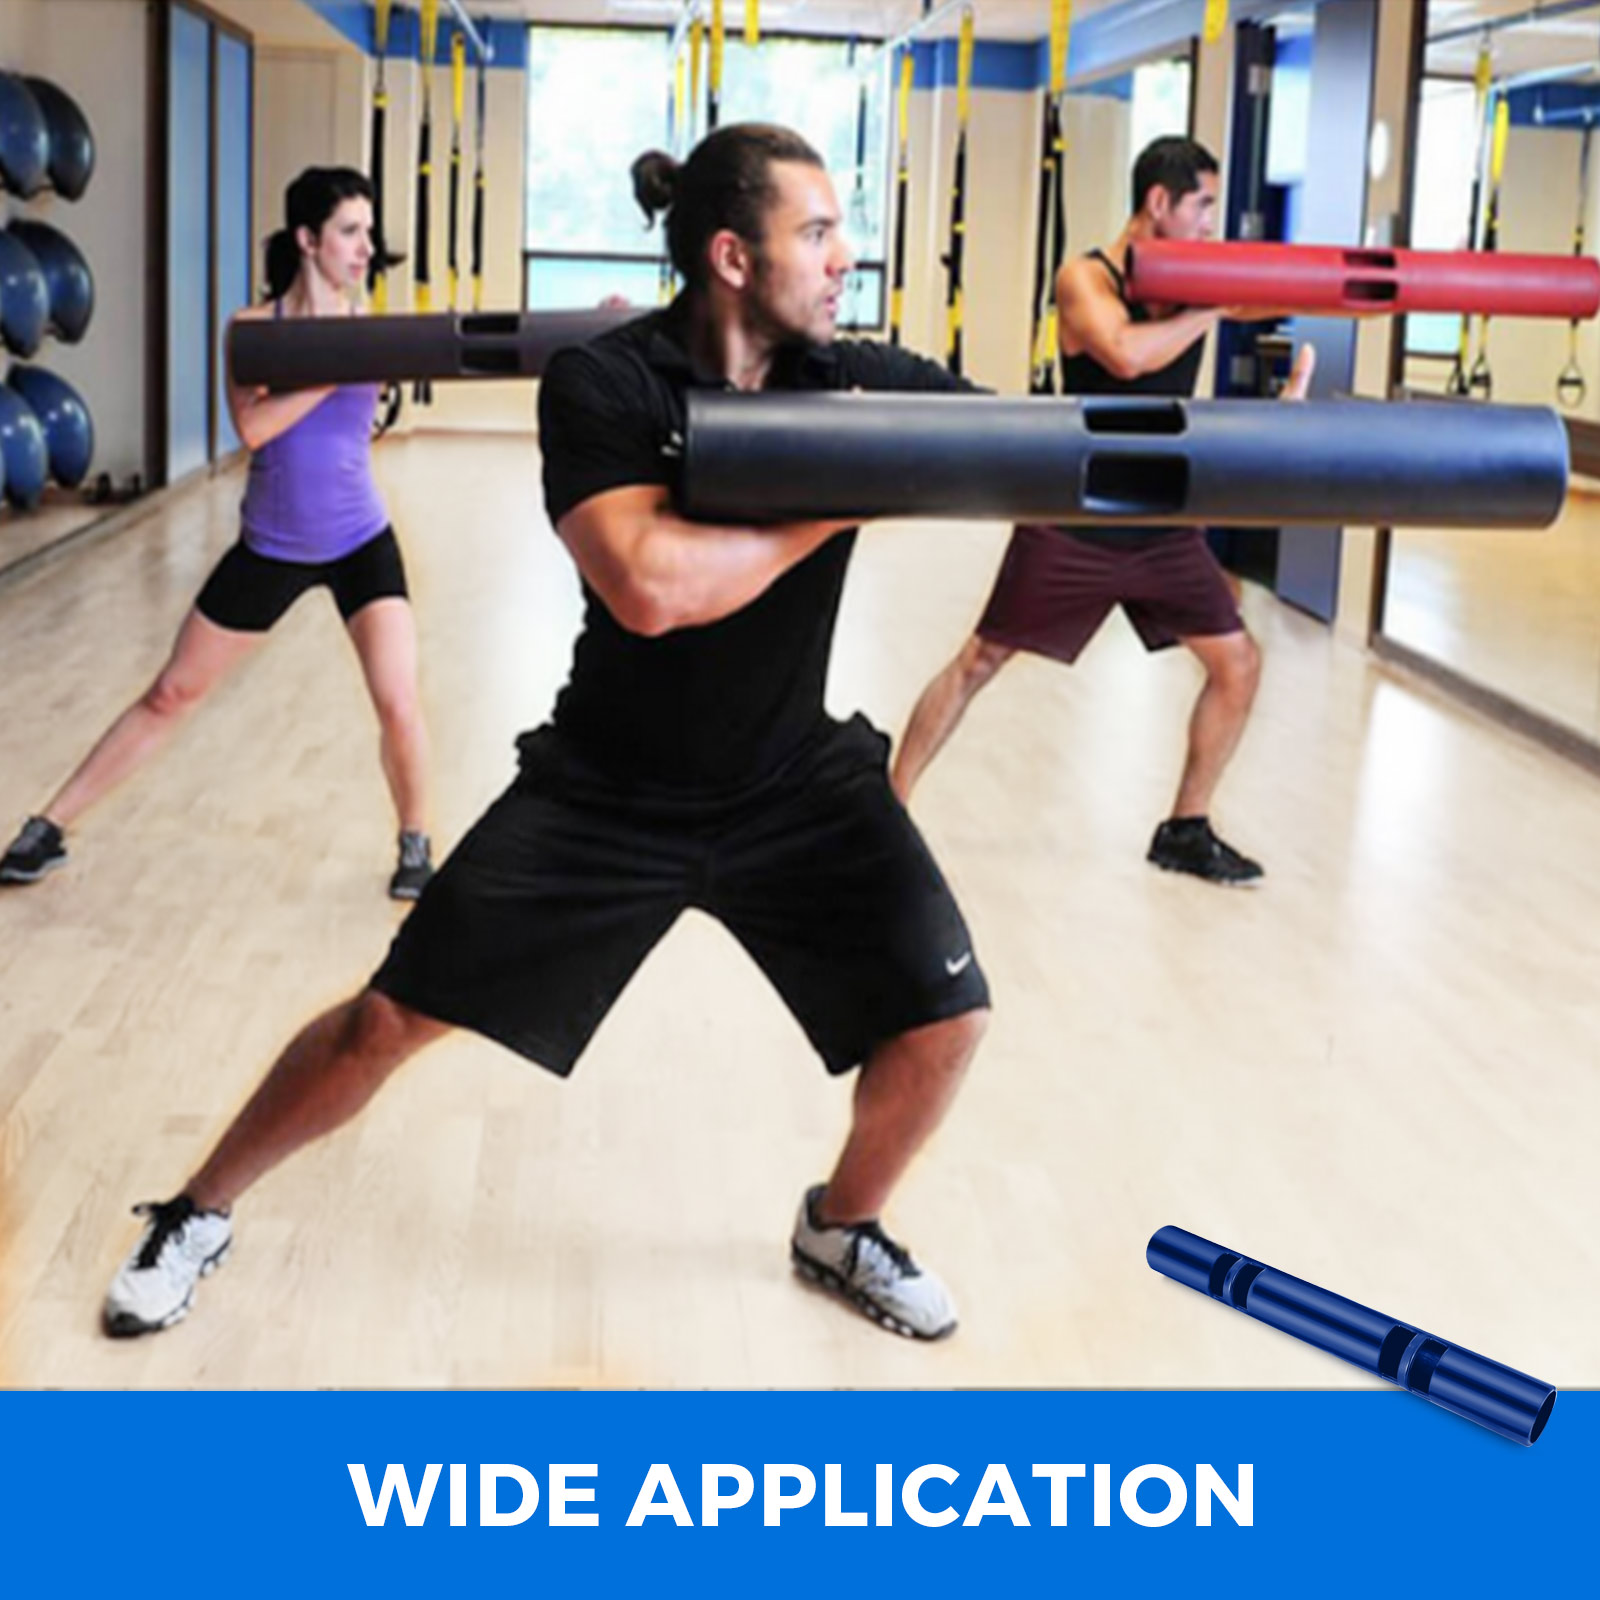 Vipr-Fitpro-Fitness-Tube-Loaded-Movement-Training-weightlifting-4-6-8-10-12-Kg thumbnail 223